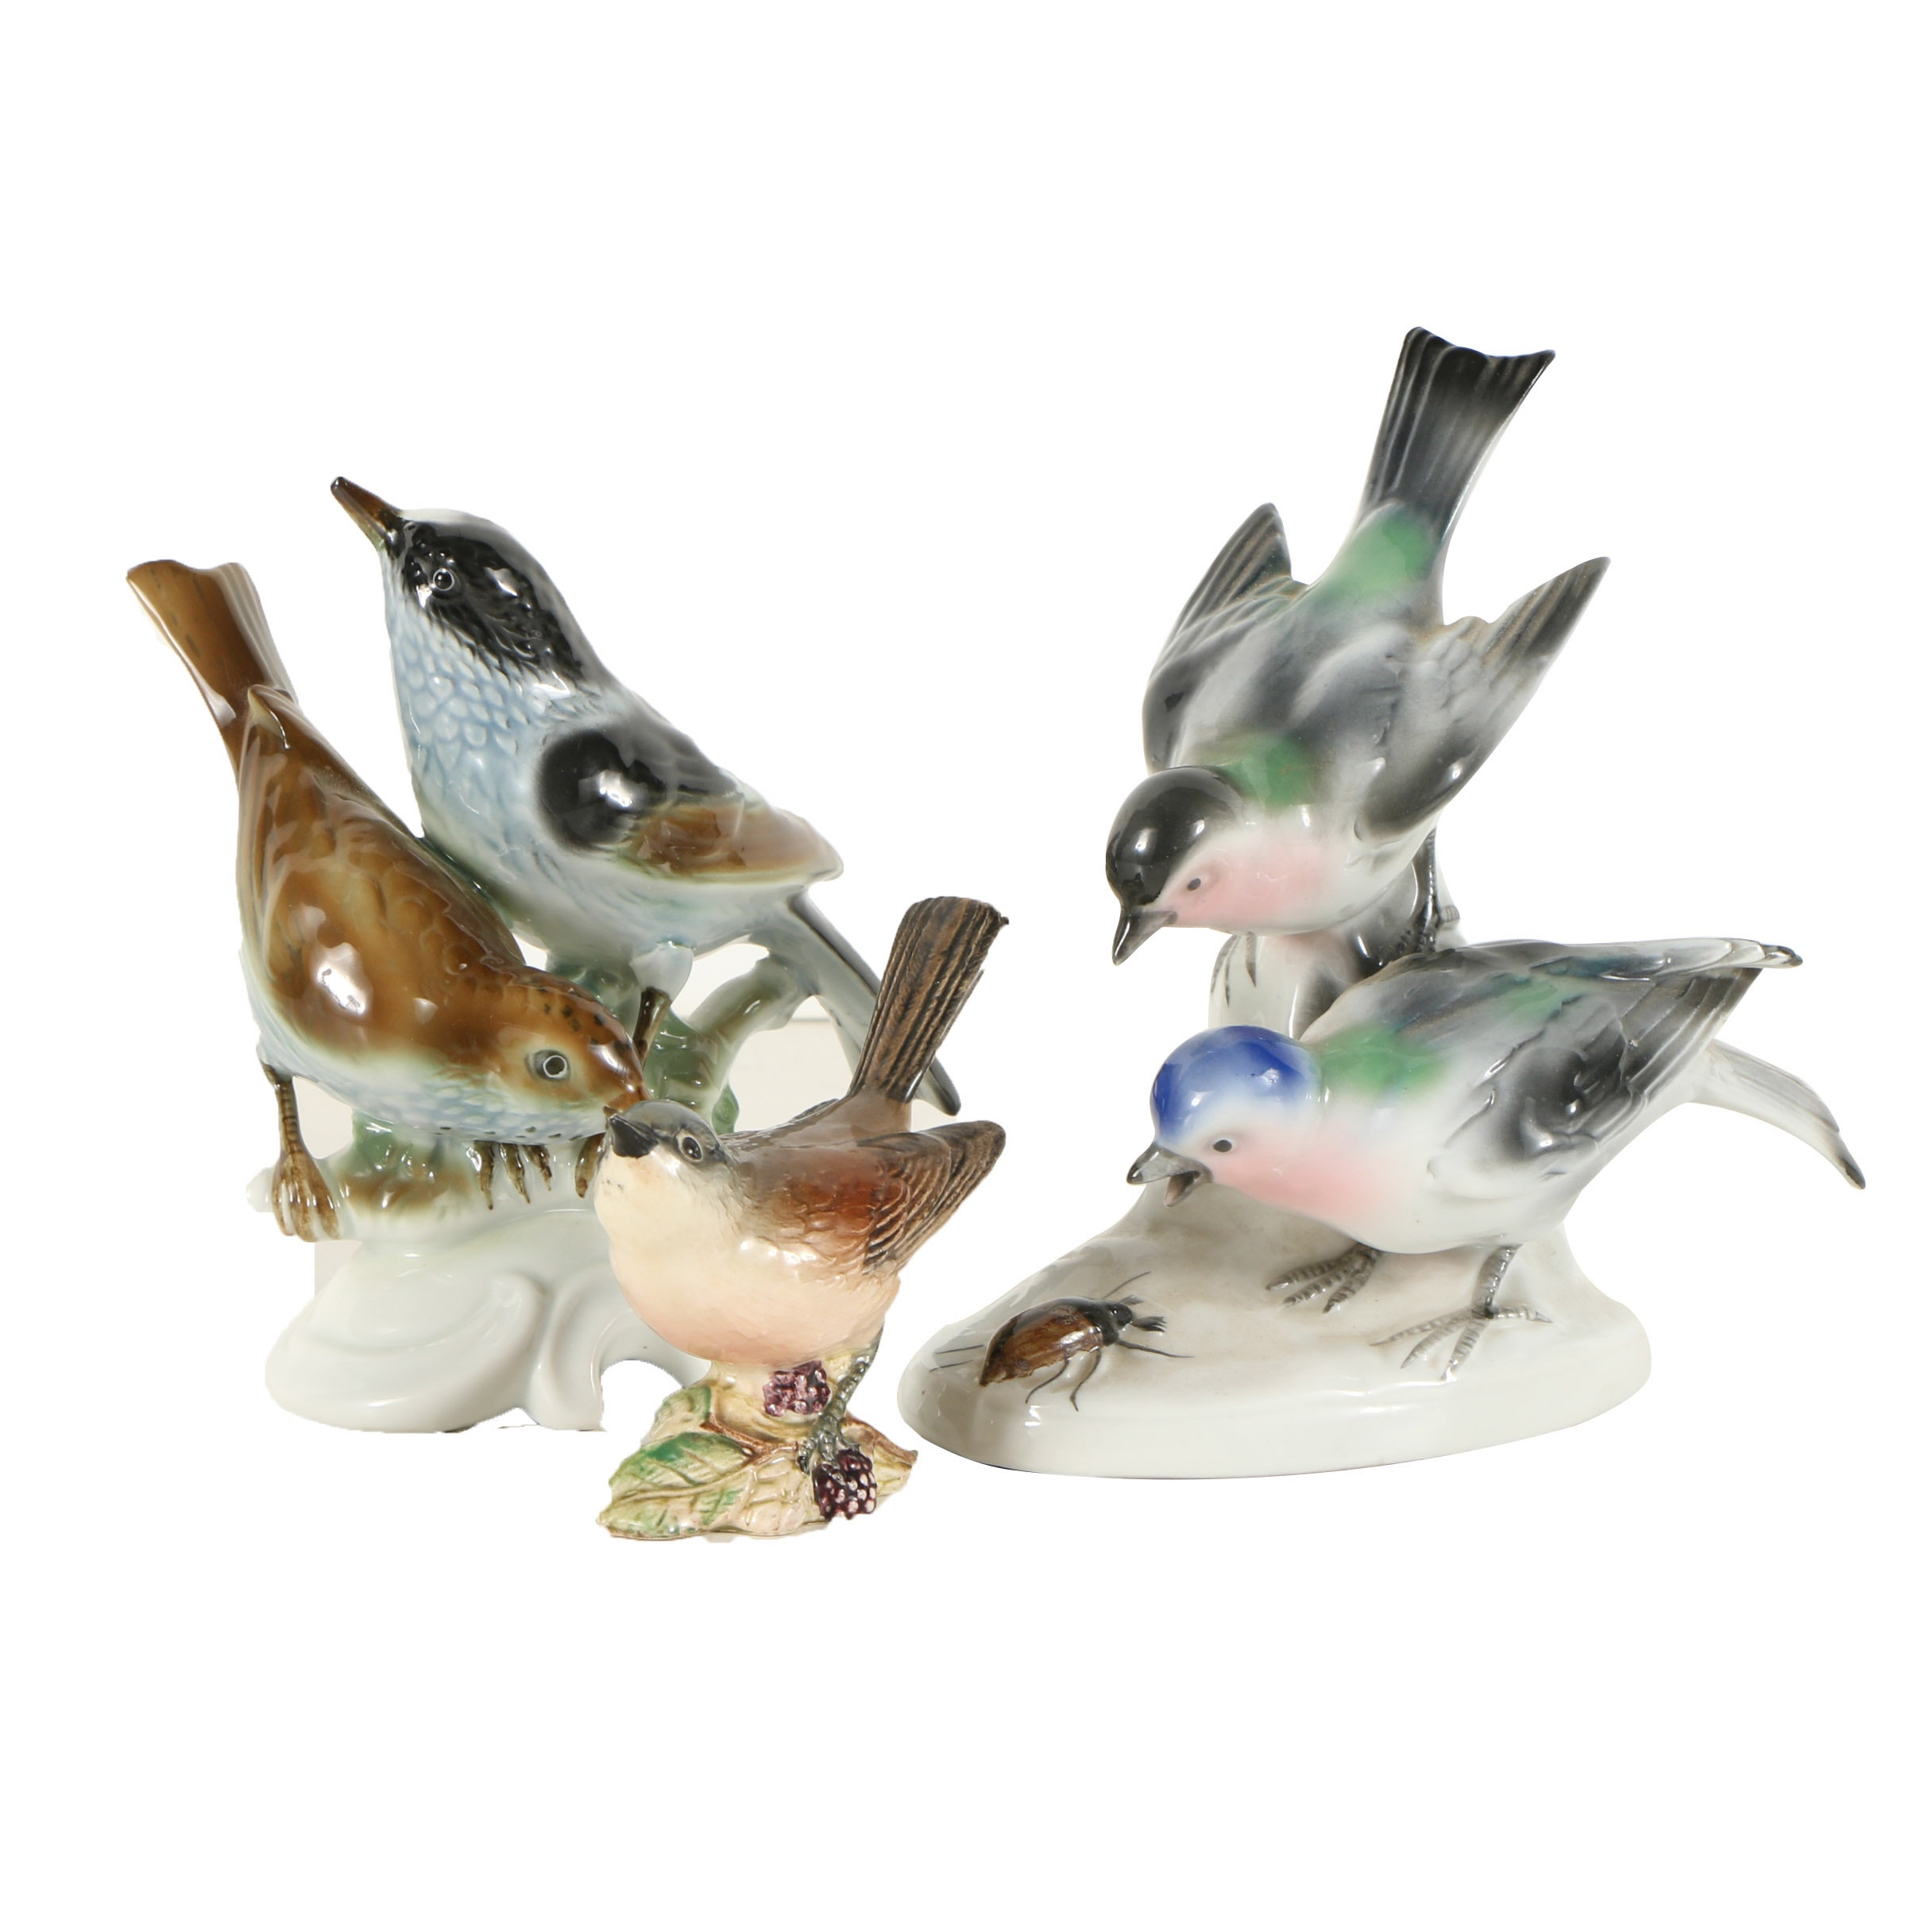 Gerold & Co. and Beswick Porcelain Bird Figurines